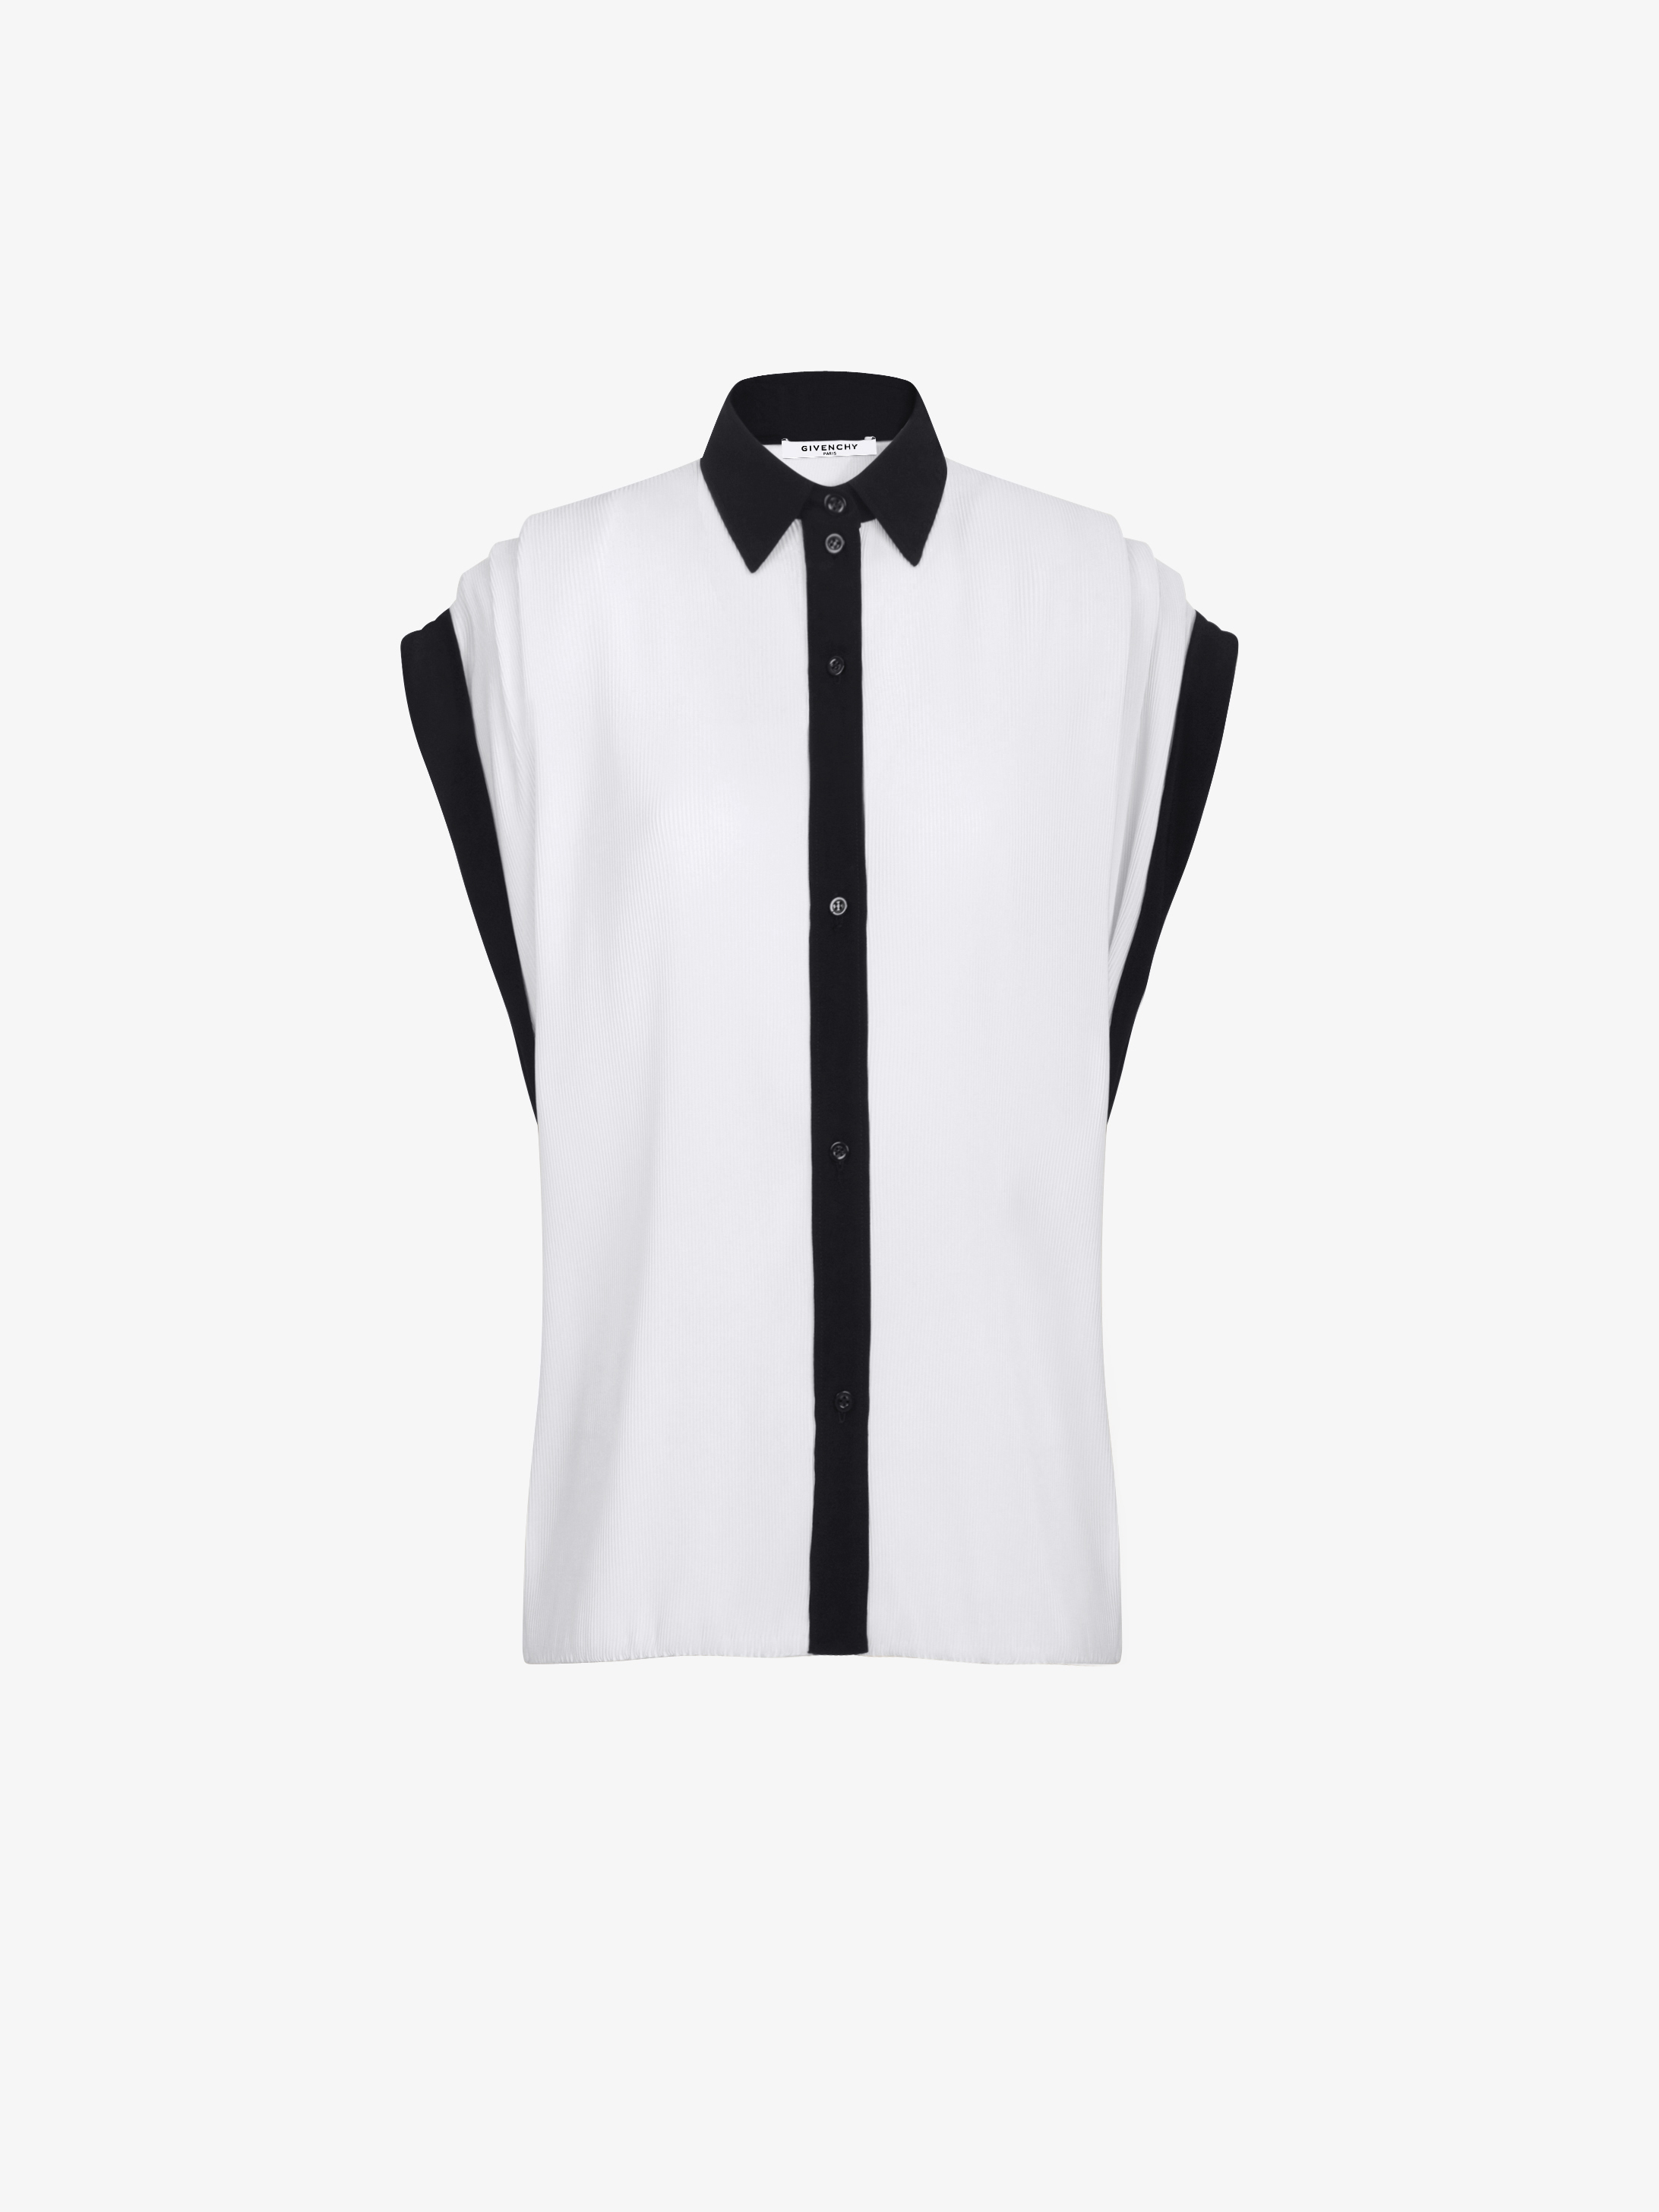 Shirt with batwing short sleeves